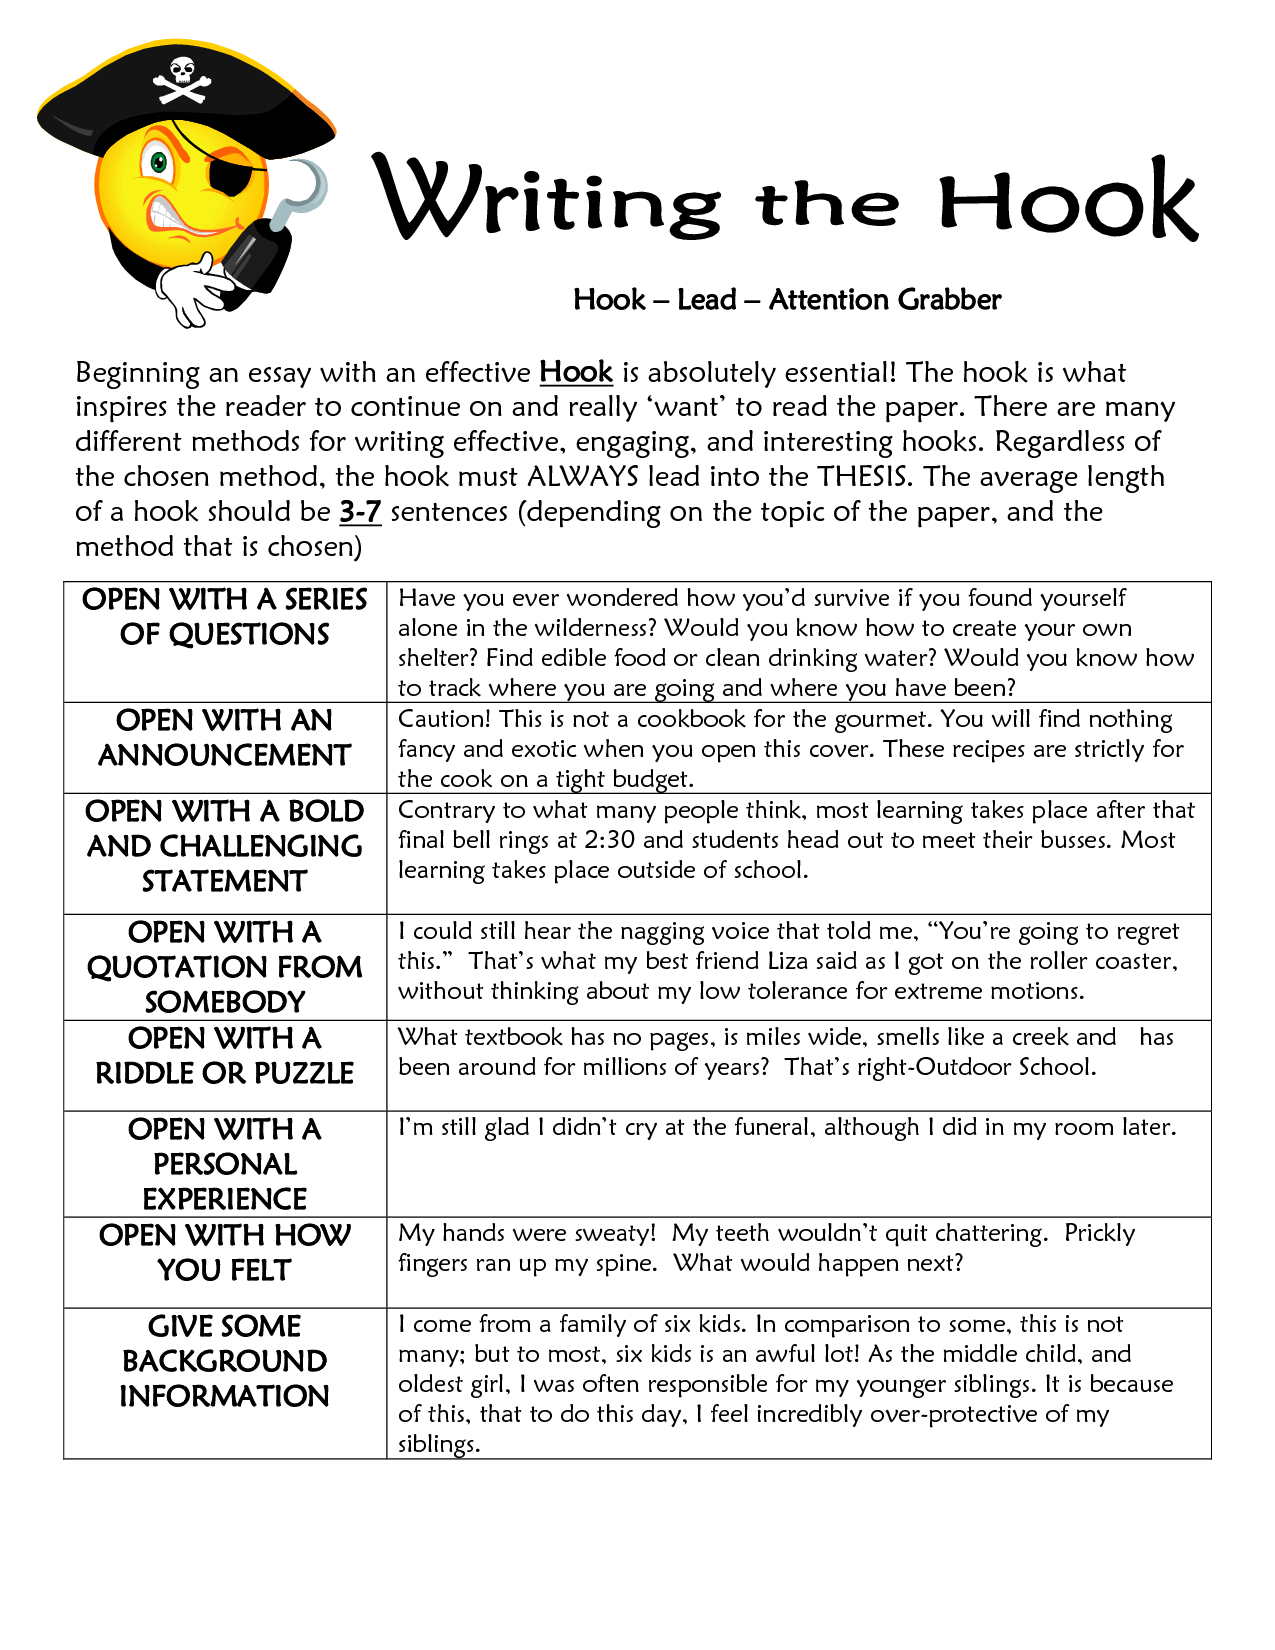 examples of essay hooks hook c lead c attention grabber examples of essay hooks hook c lead c attention grabber beginning an essay an middot revising writingwriting